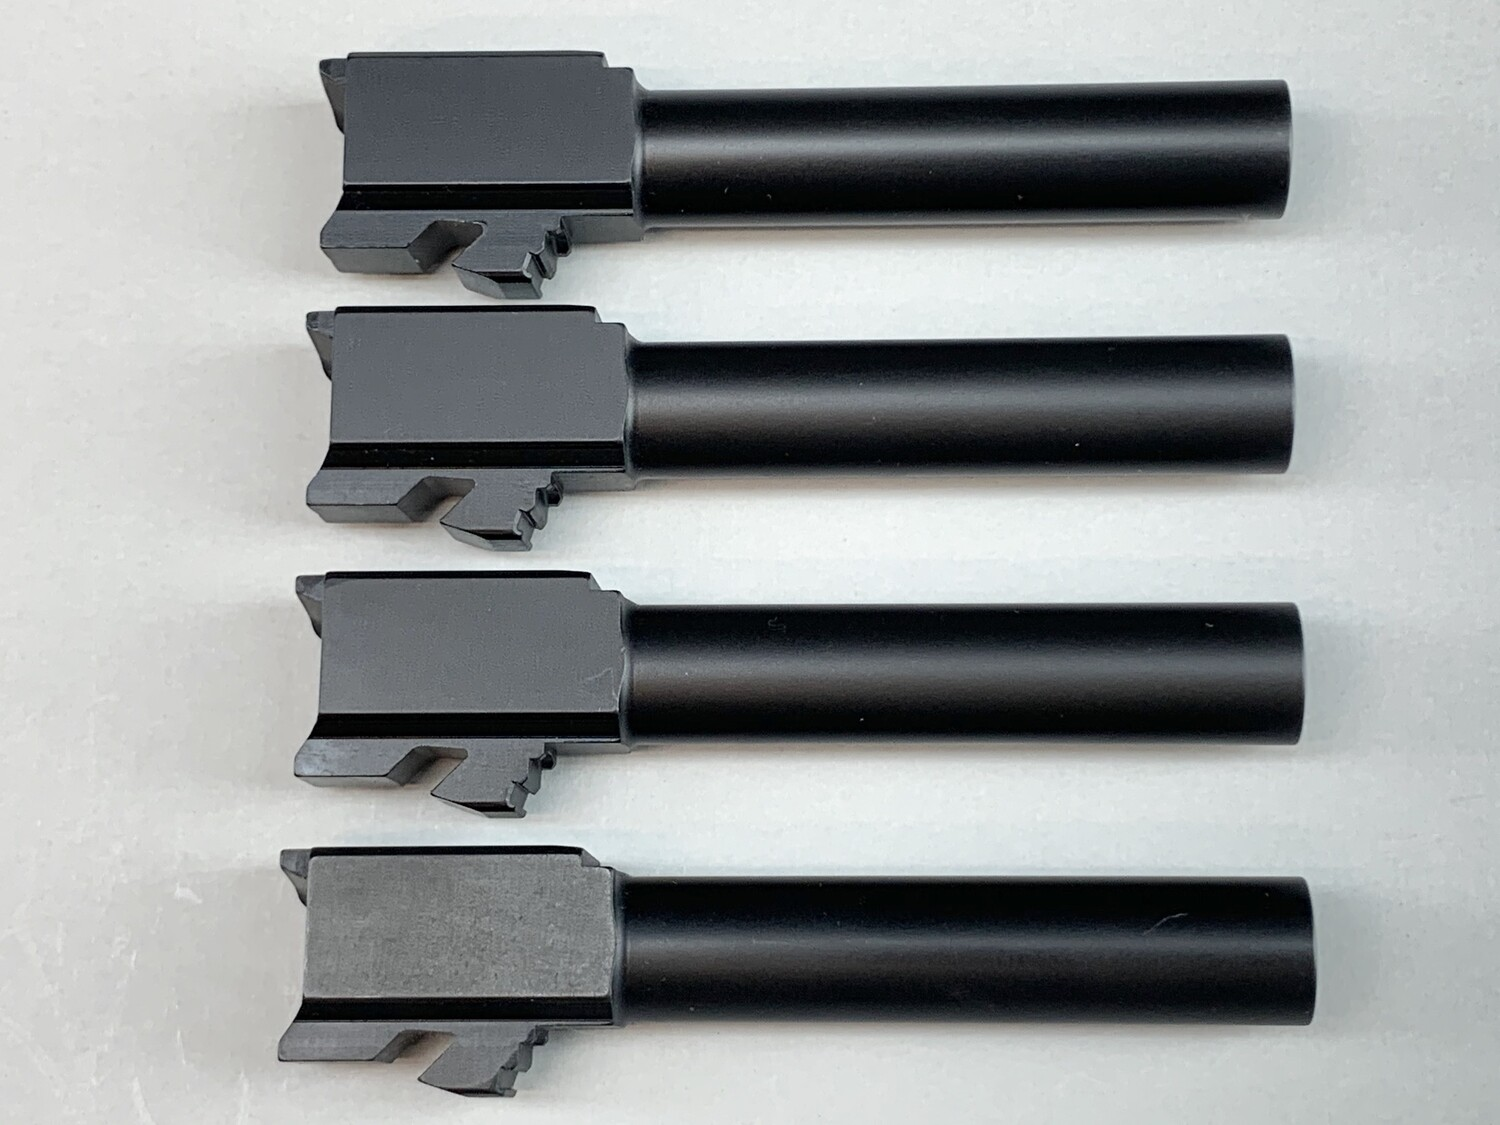 """Battle Pack"" - Includes 4 Count of Glock 19 Barrels - 9mm - Black Nitride Coated"